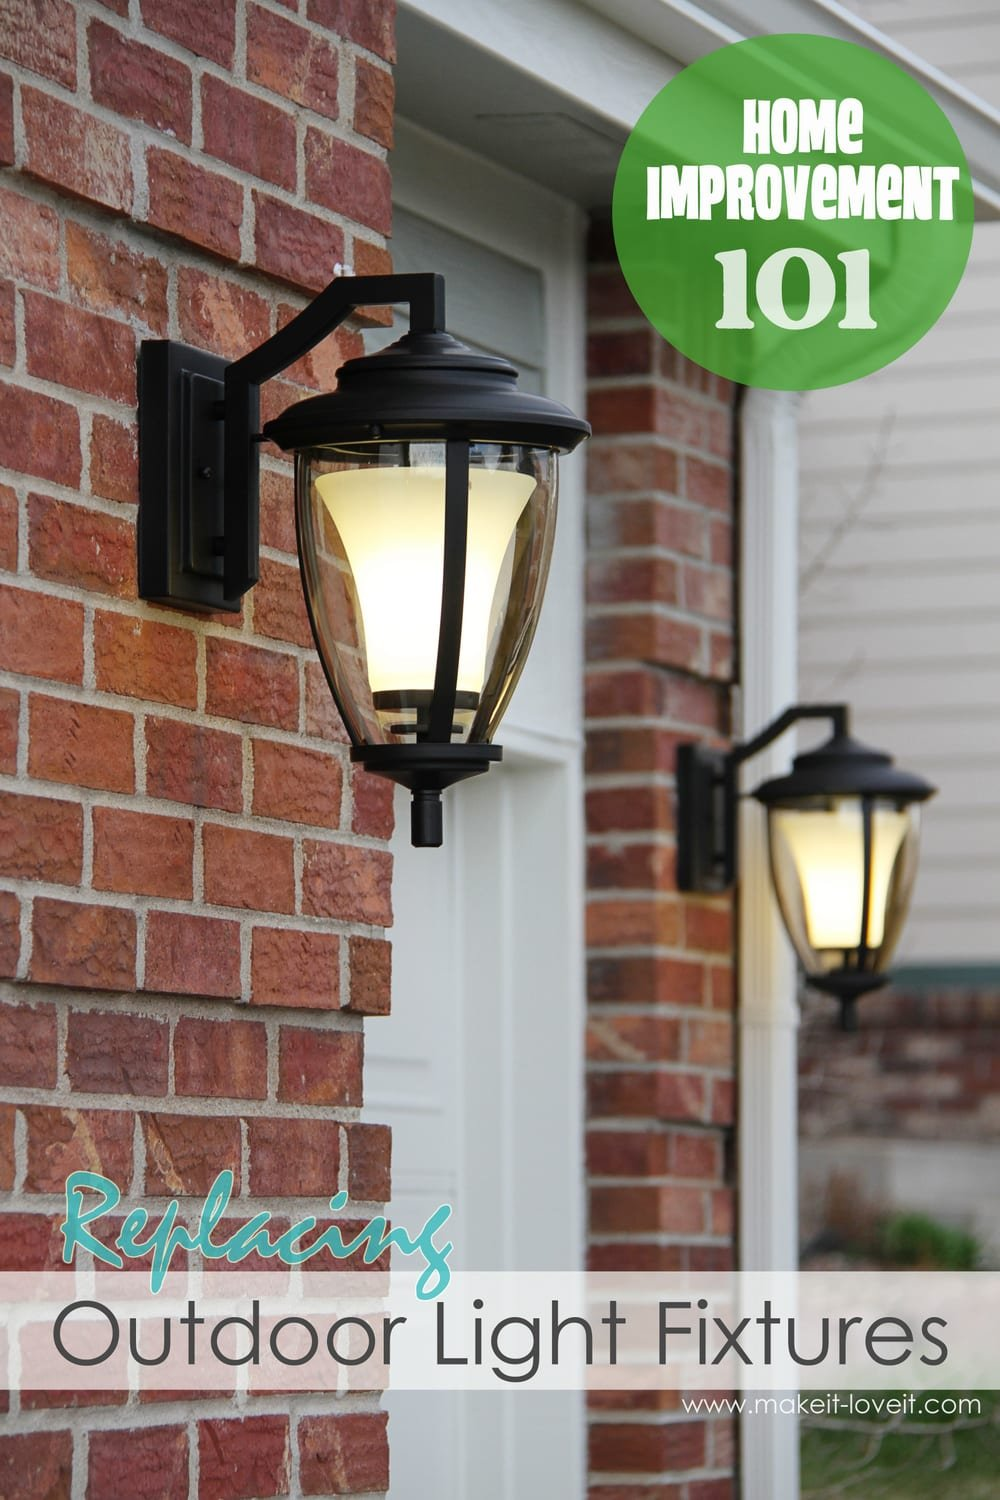 IMG_4919-1 - Home Improvement: Replacing Outdoor Light Fixtures (don't Be